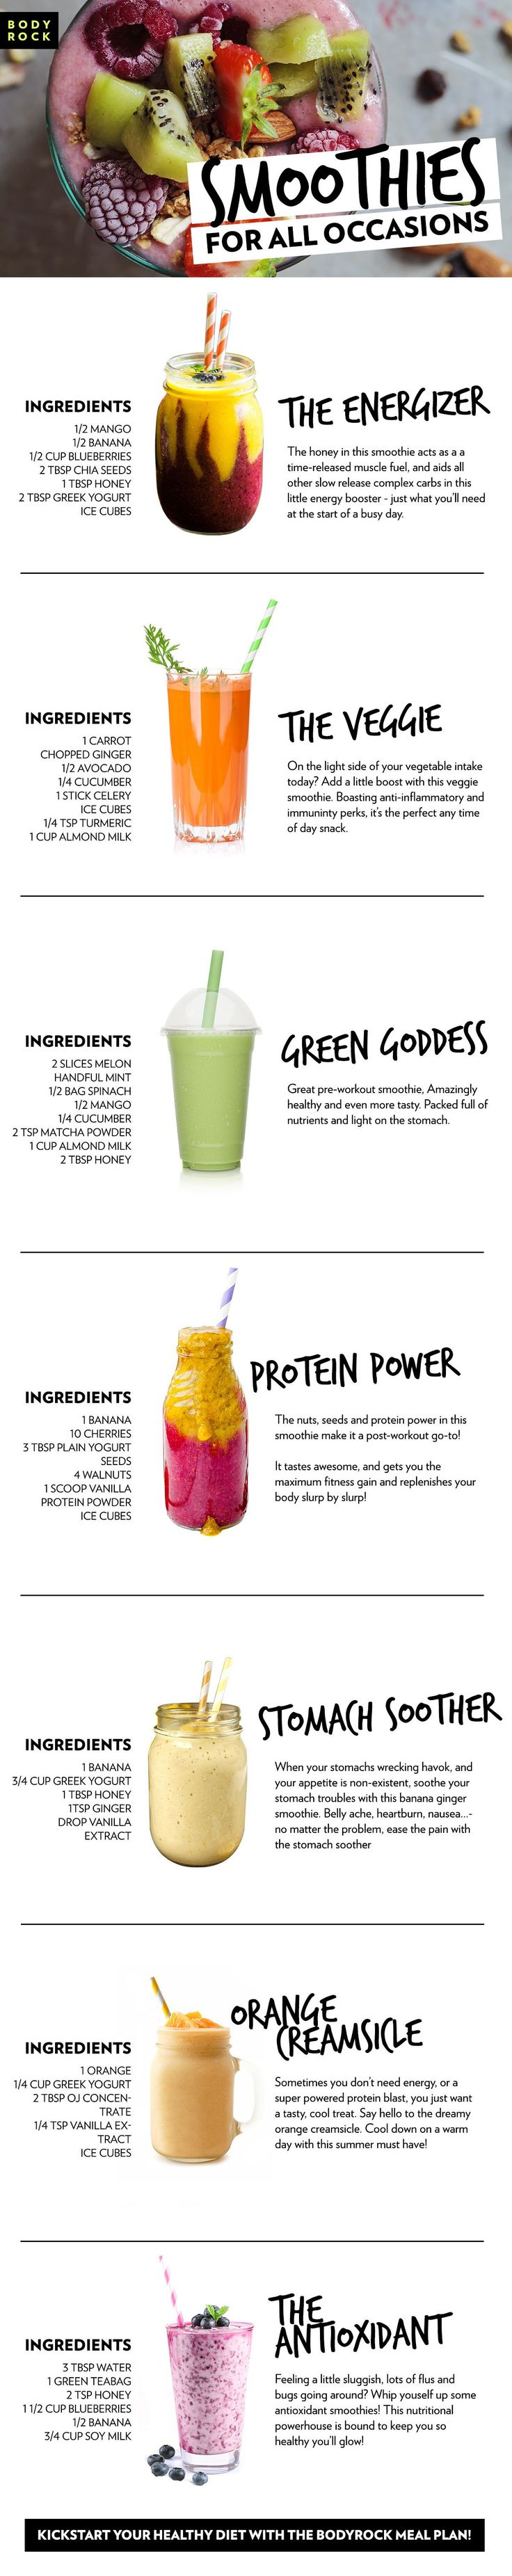 Versatile, delicious, and nutritionally dense, smoothies are the go-to favorites of health and fitness buffs the world over. Think about it, who doesn't love a good smoothie?